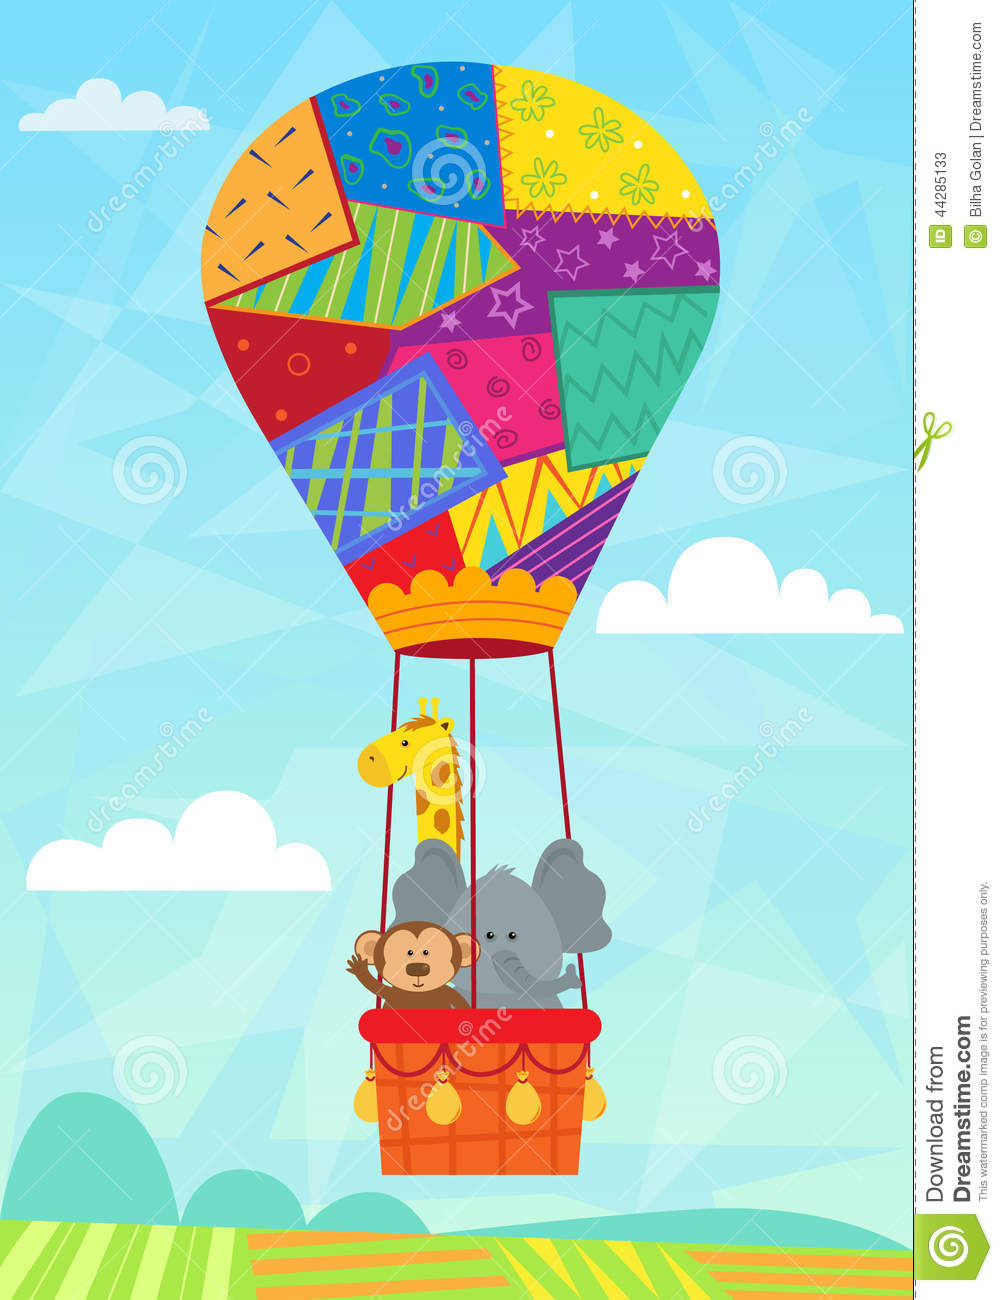 Air Max Elephant Animal In Hot Air Balloon Stock Vector Illustration Of